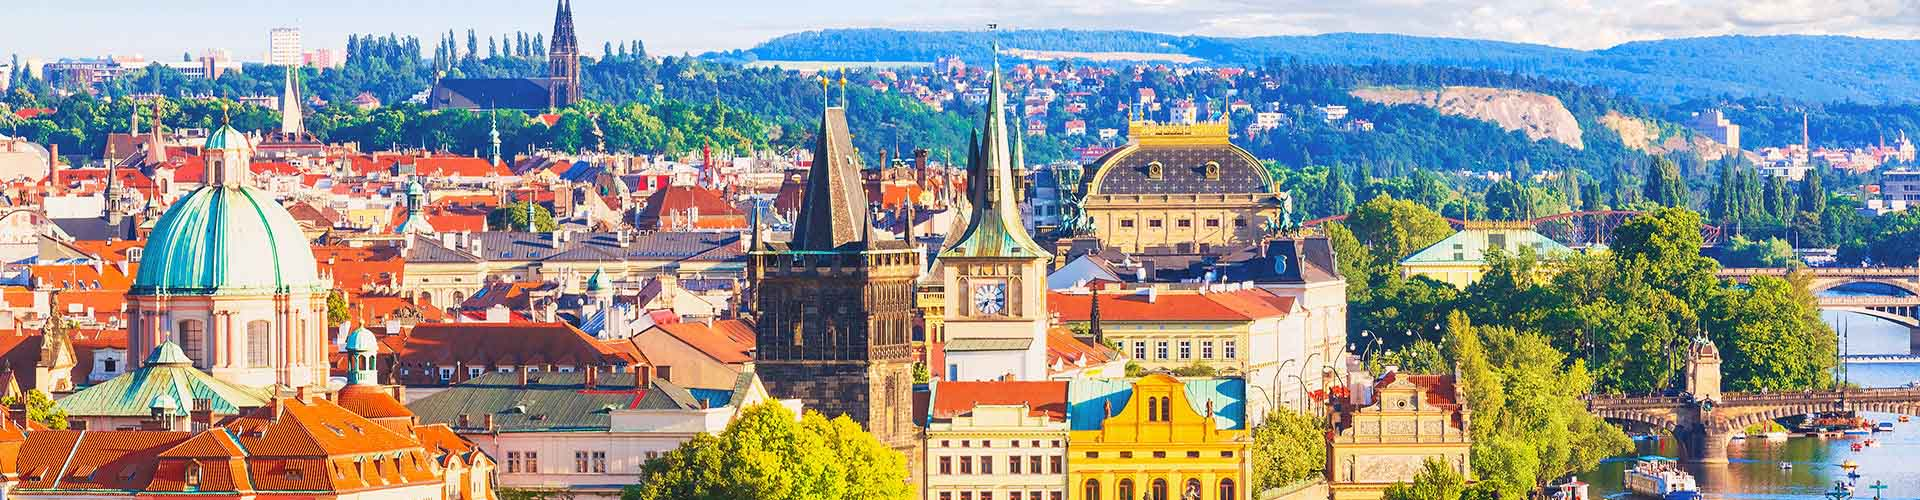 Praga – Hotels for students in Praga. Maps of República Checa, photos and reviews for each hotel for student in Praga.